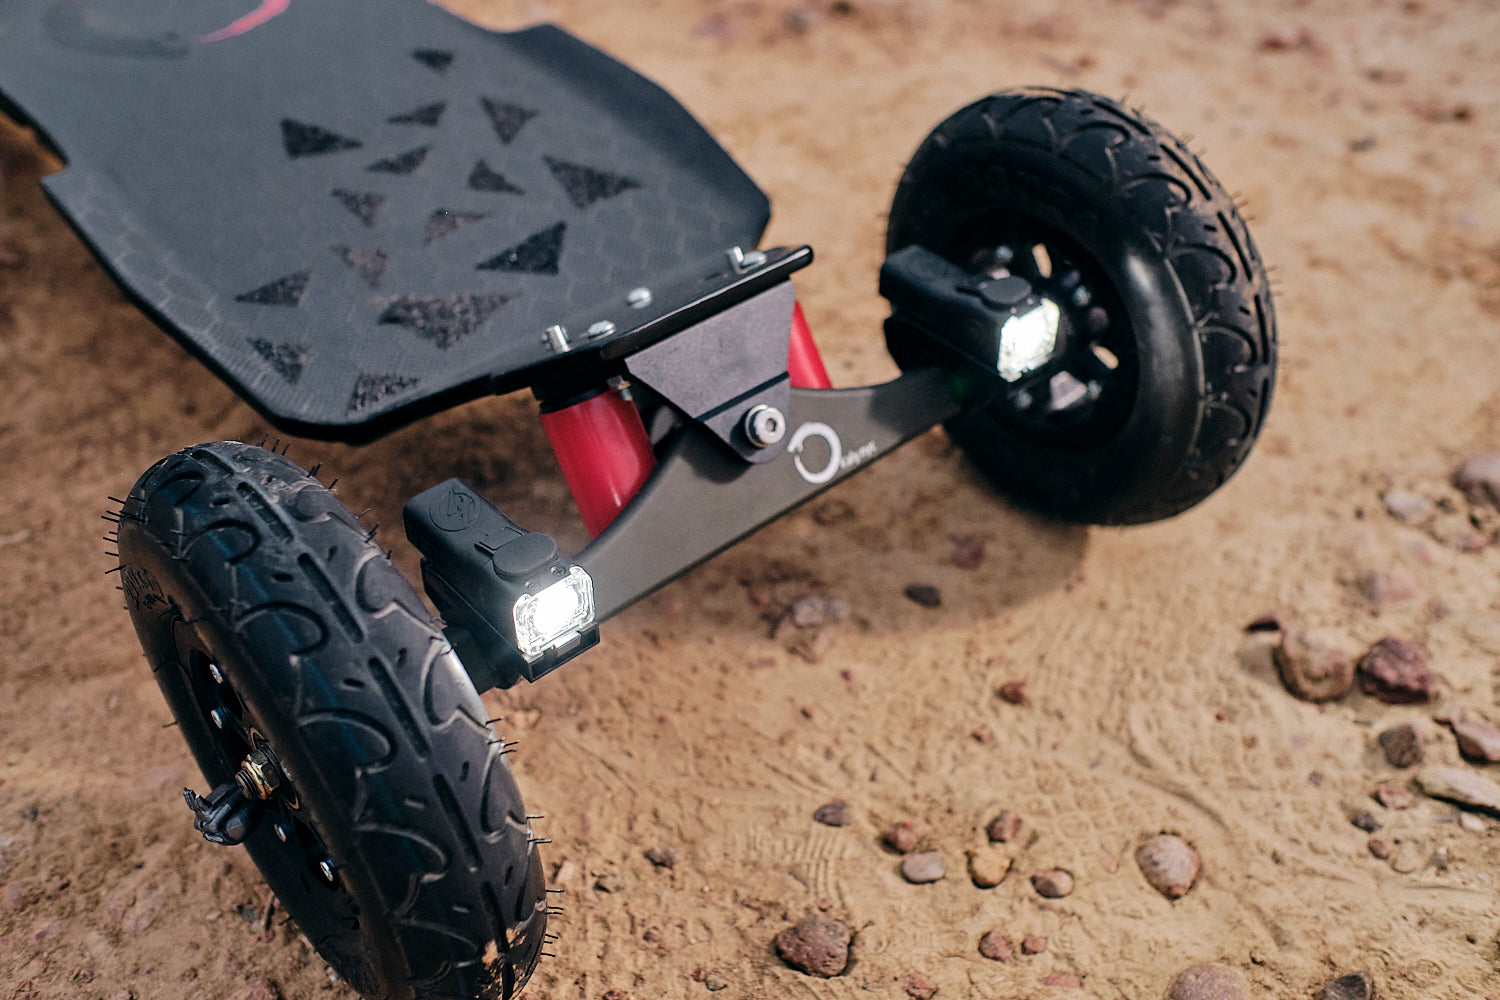 Mountainboard Light Packs